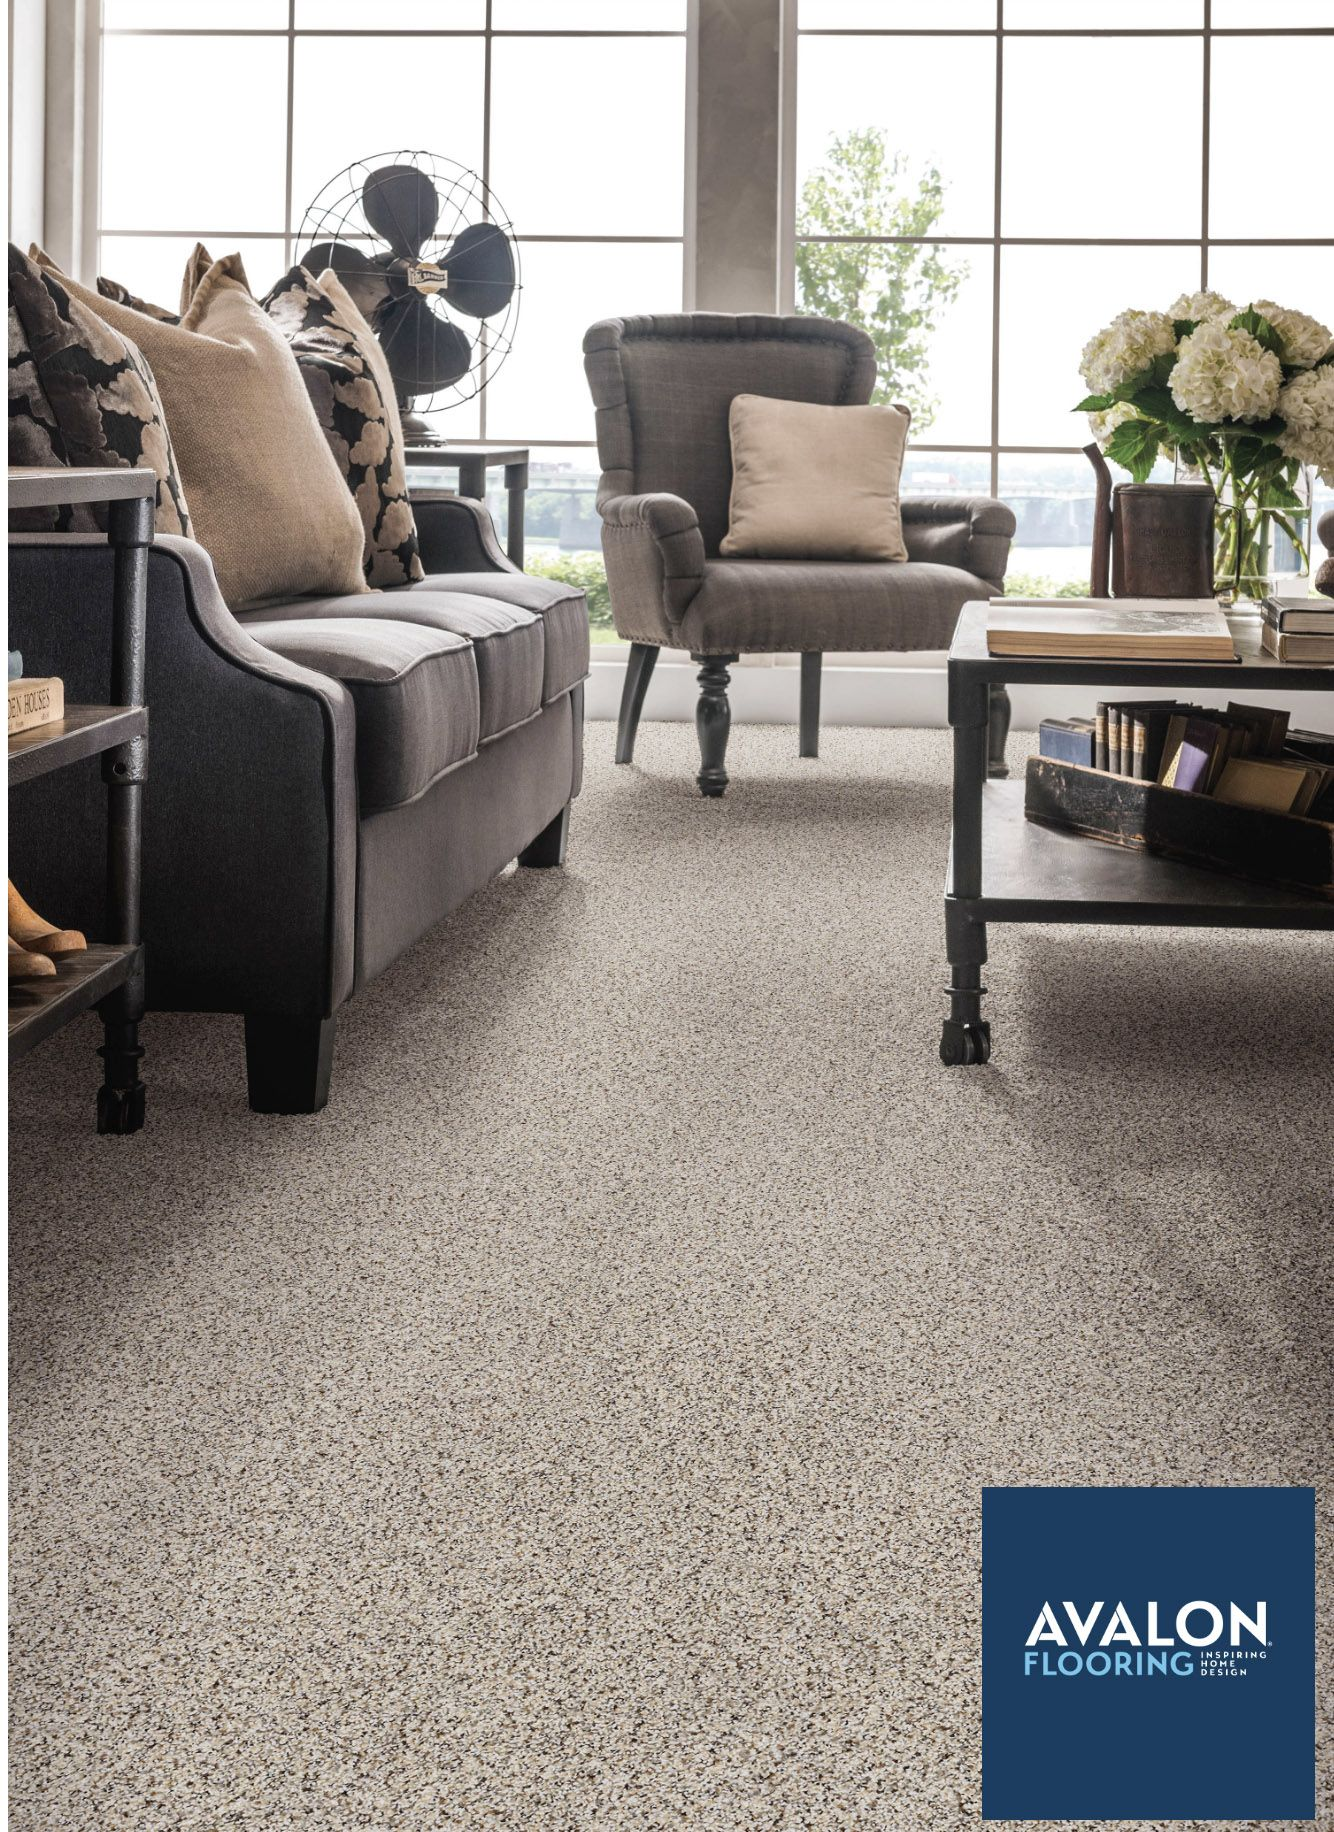 Neutral Carpet Is Perfect For Adding Warmth And Coziness To Any Room